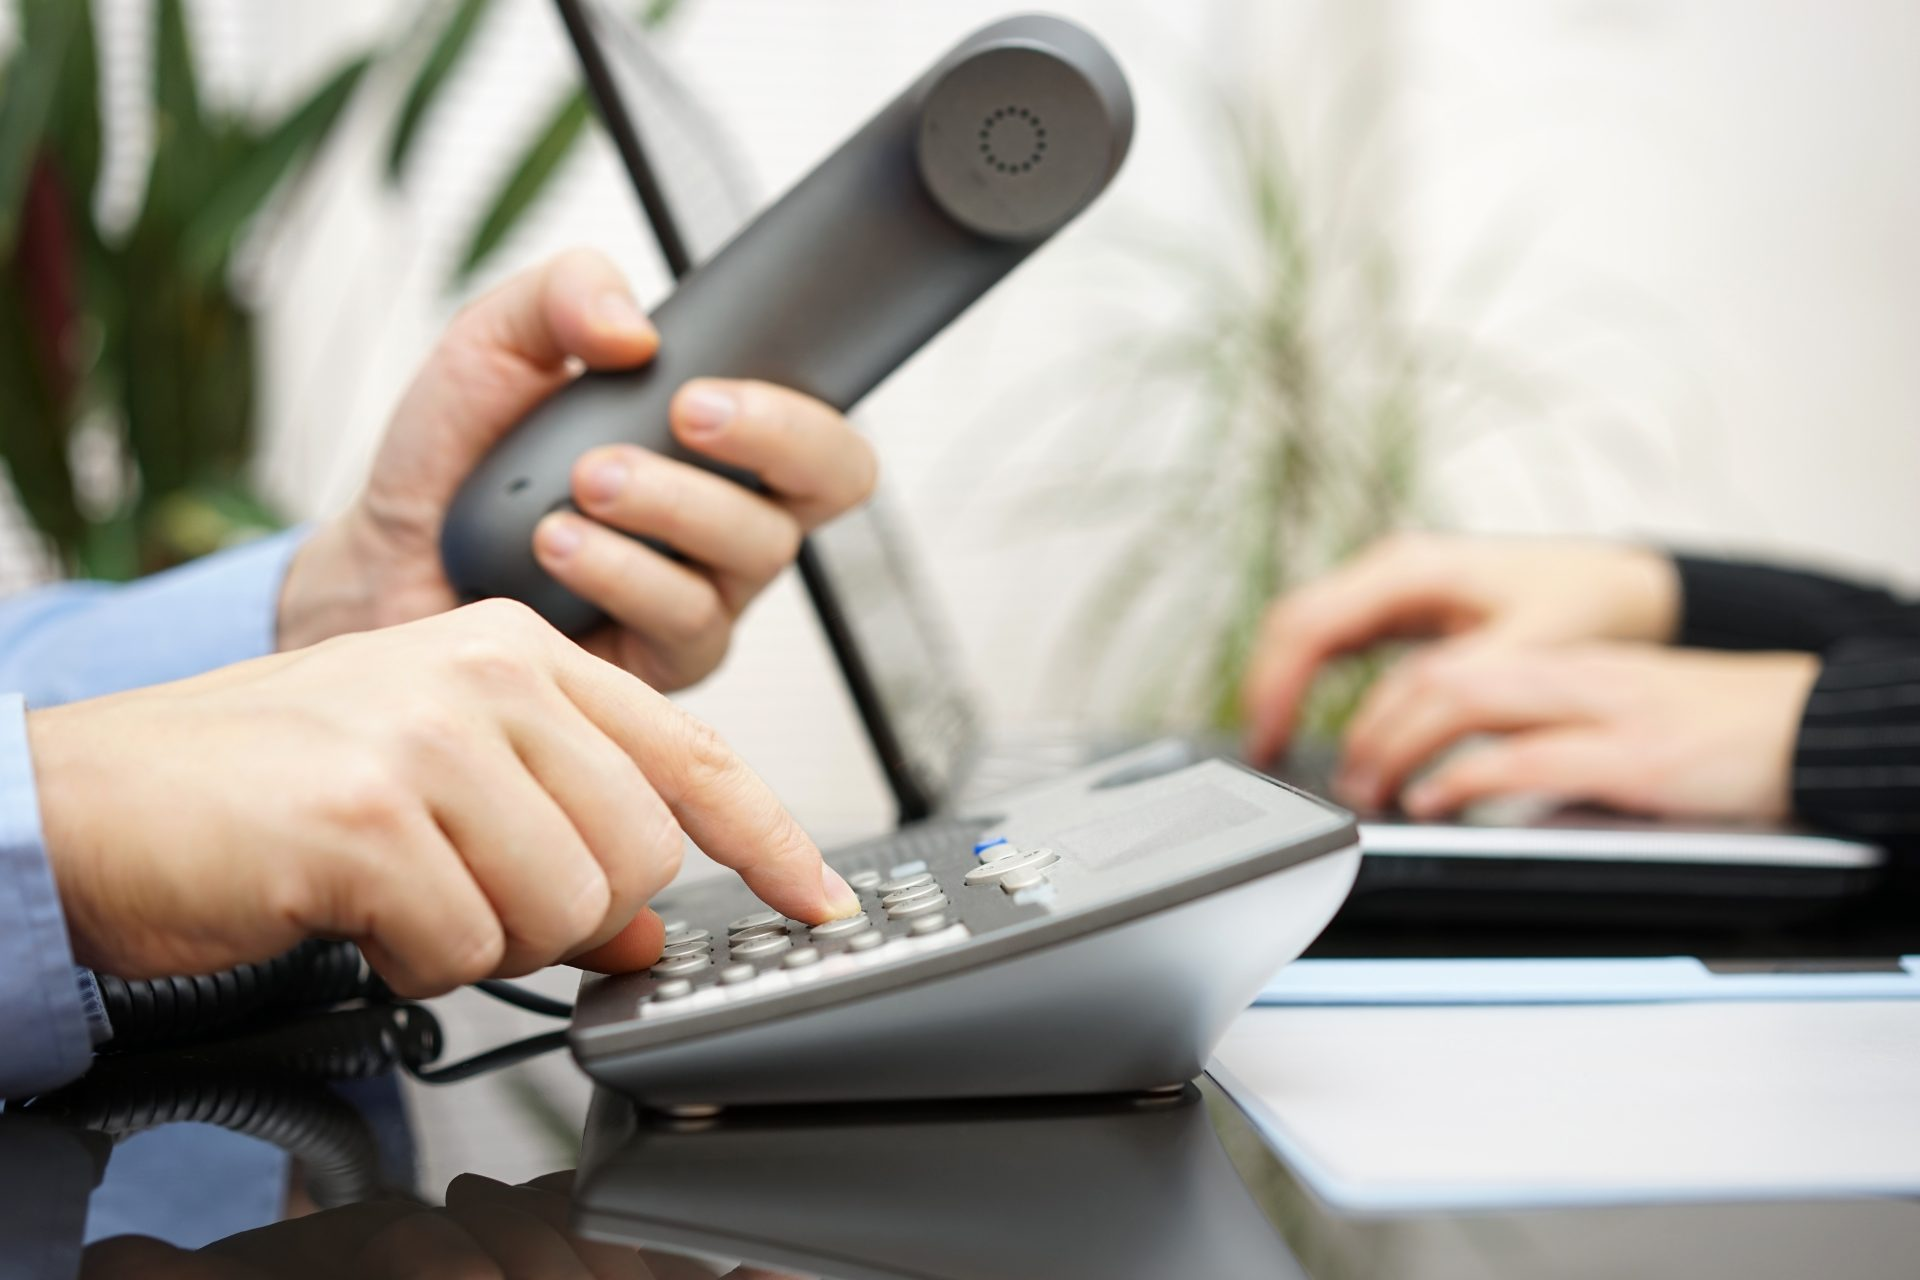 What Are the Best Questions to Ask During an Earnings Call?